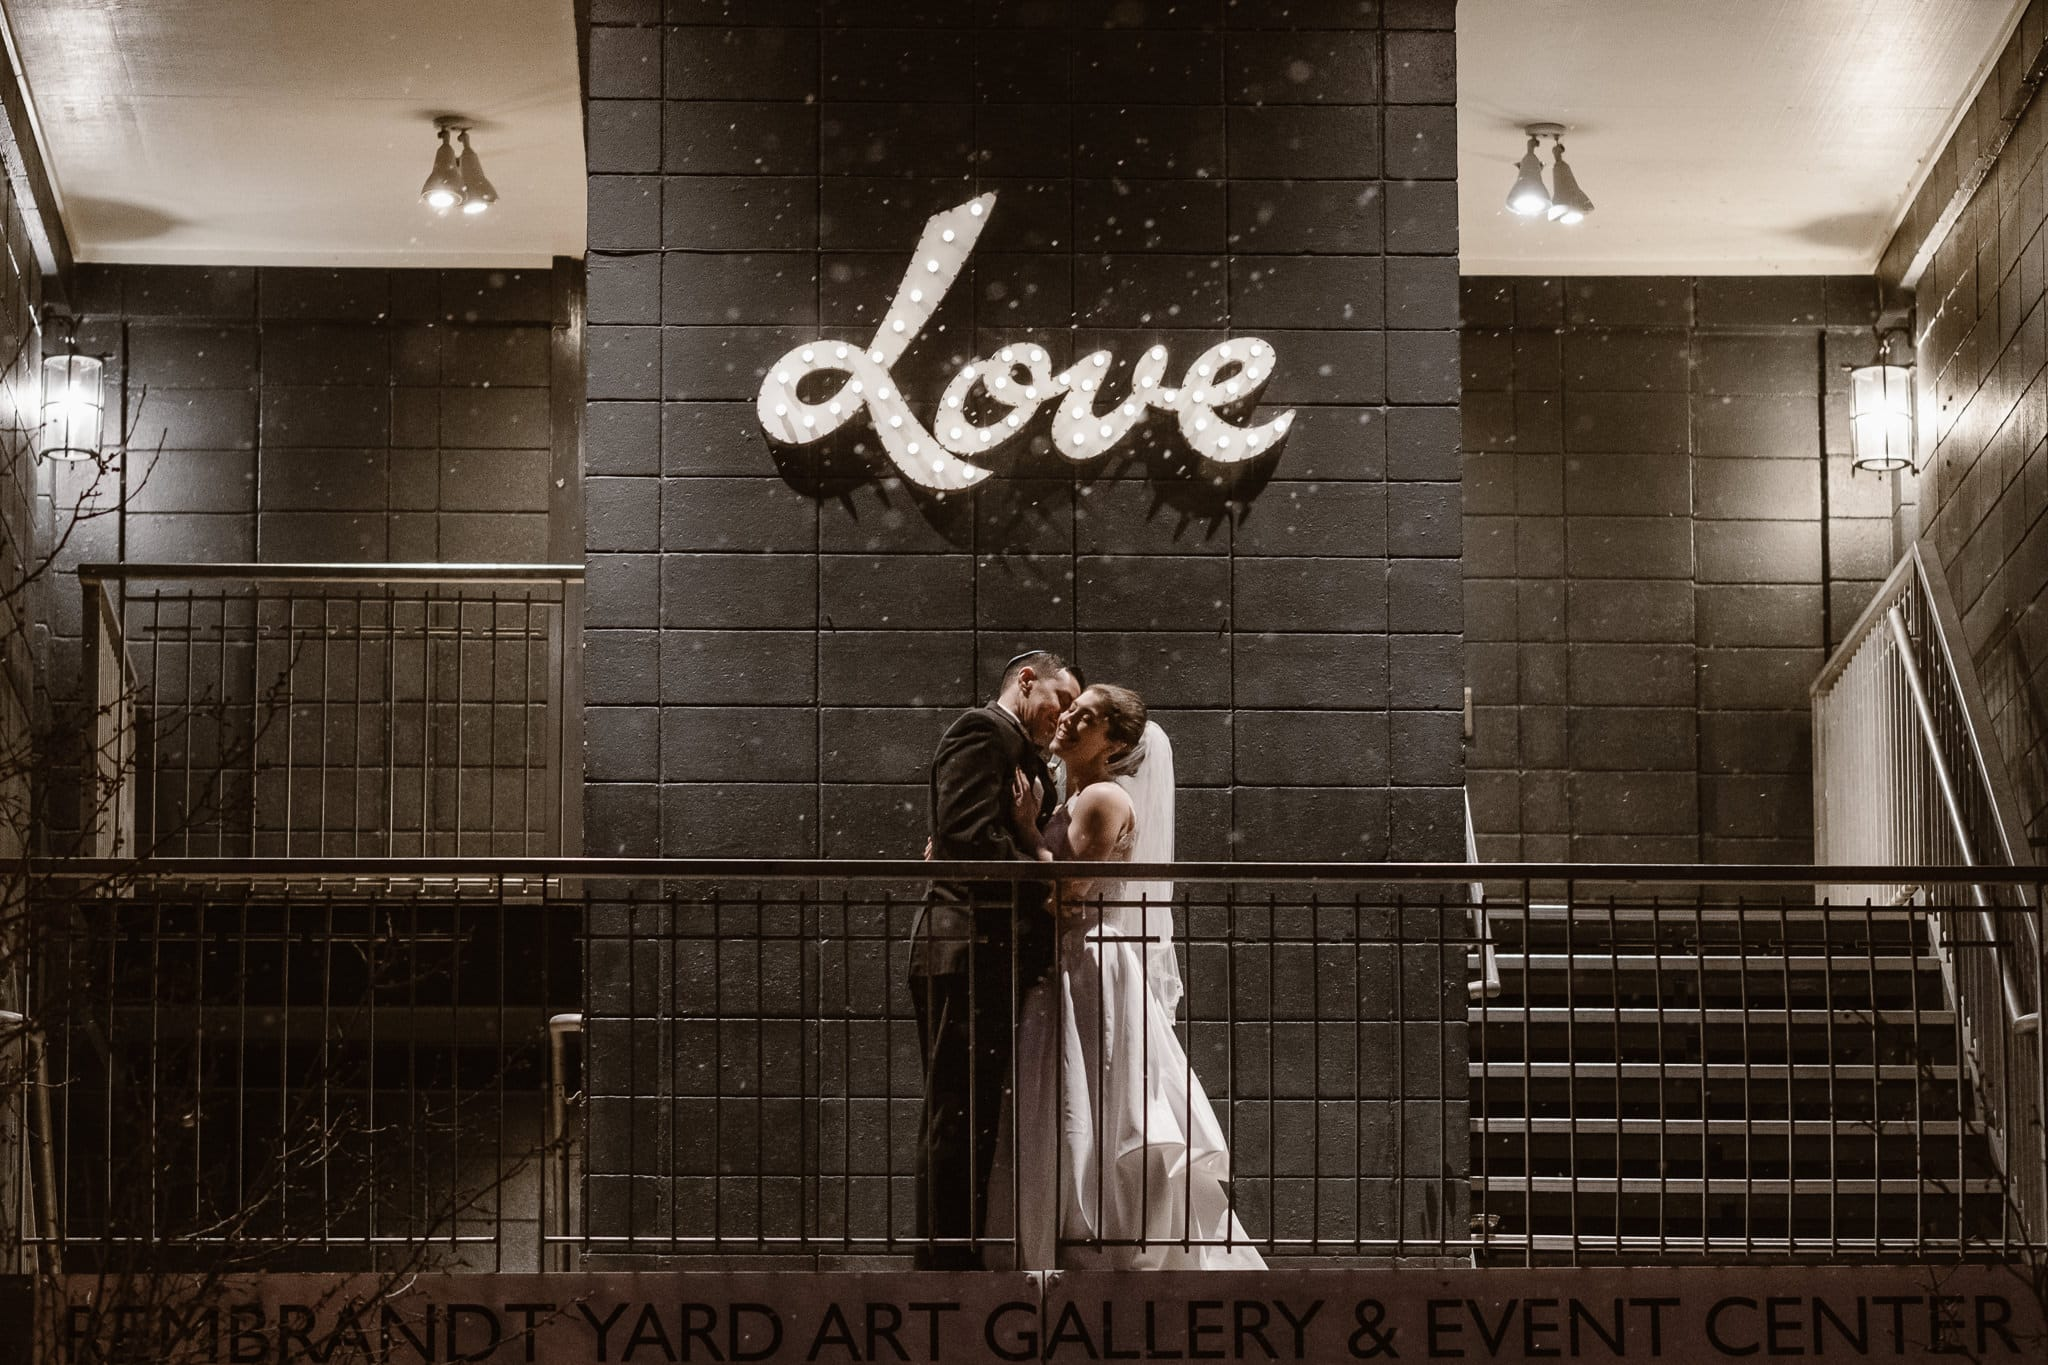 Rembrandt Yard wedding photographer, Boulder wedding photographer, bride and groom nighttime photo outside in snow